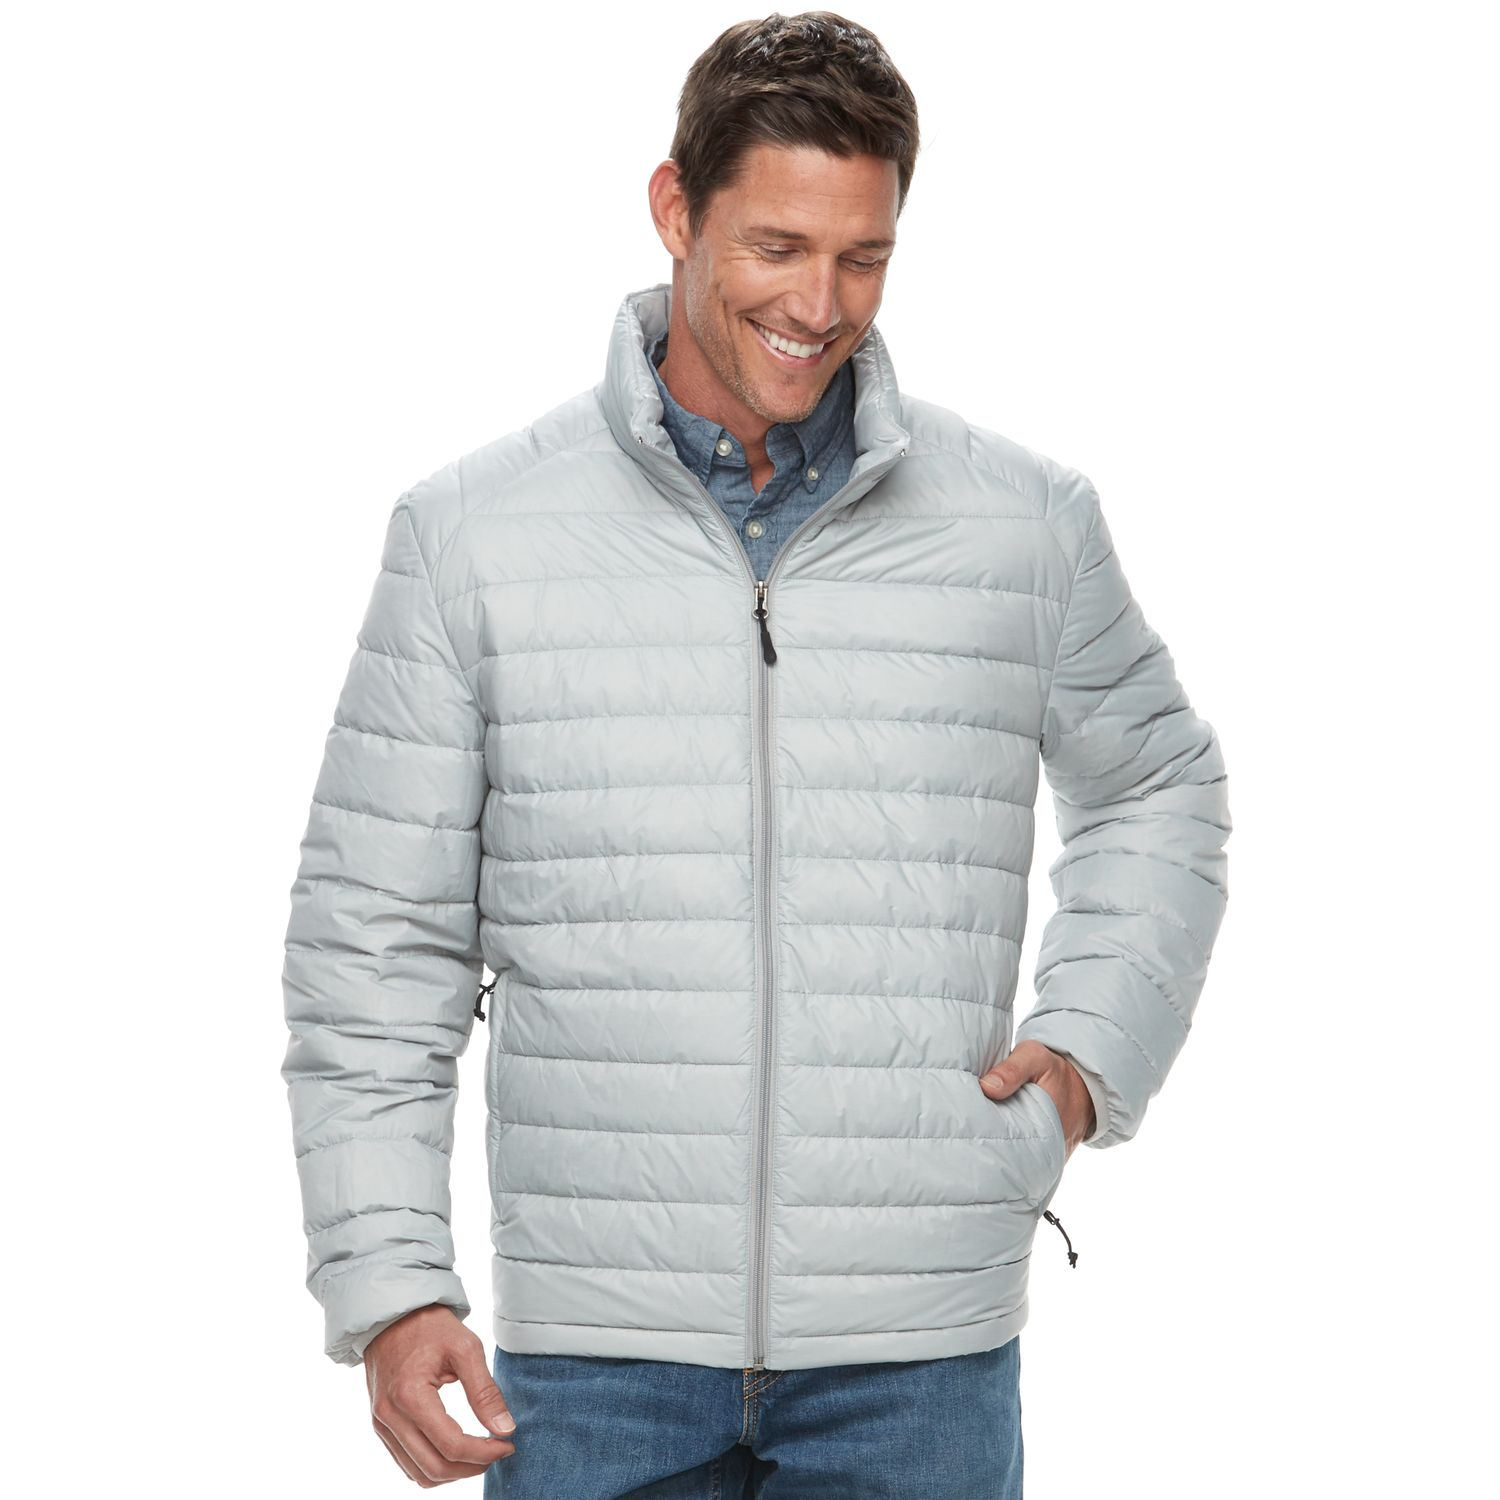 Mens puffer jacket kohls